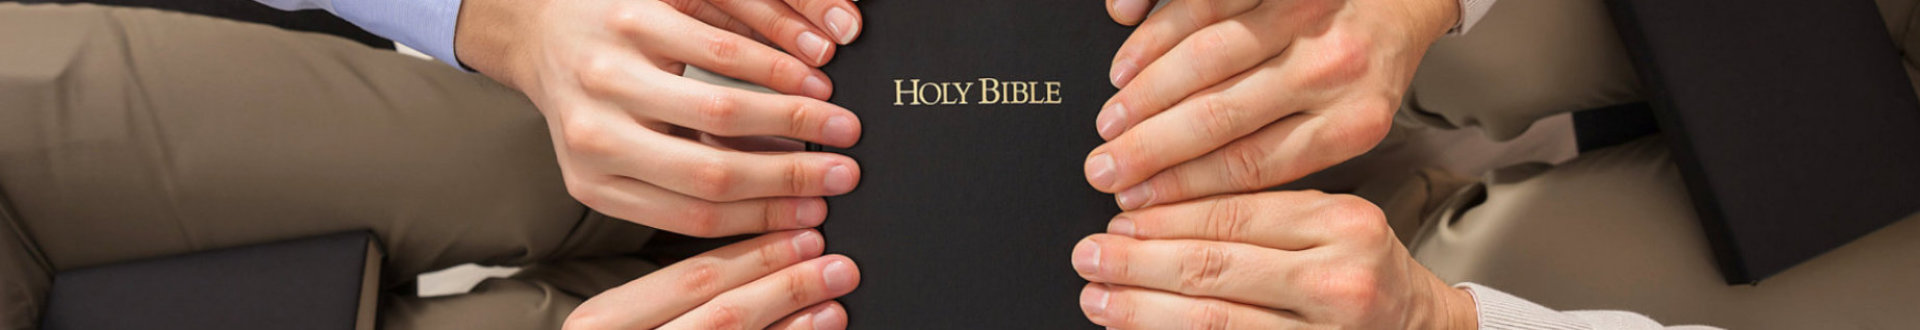 people holding a bible